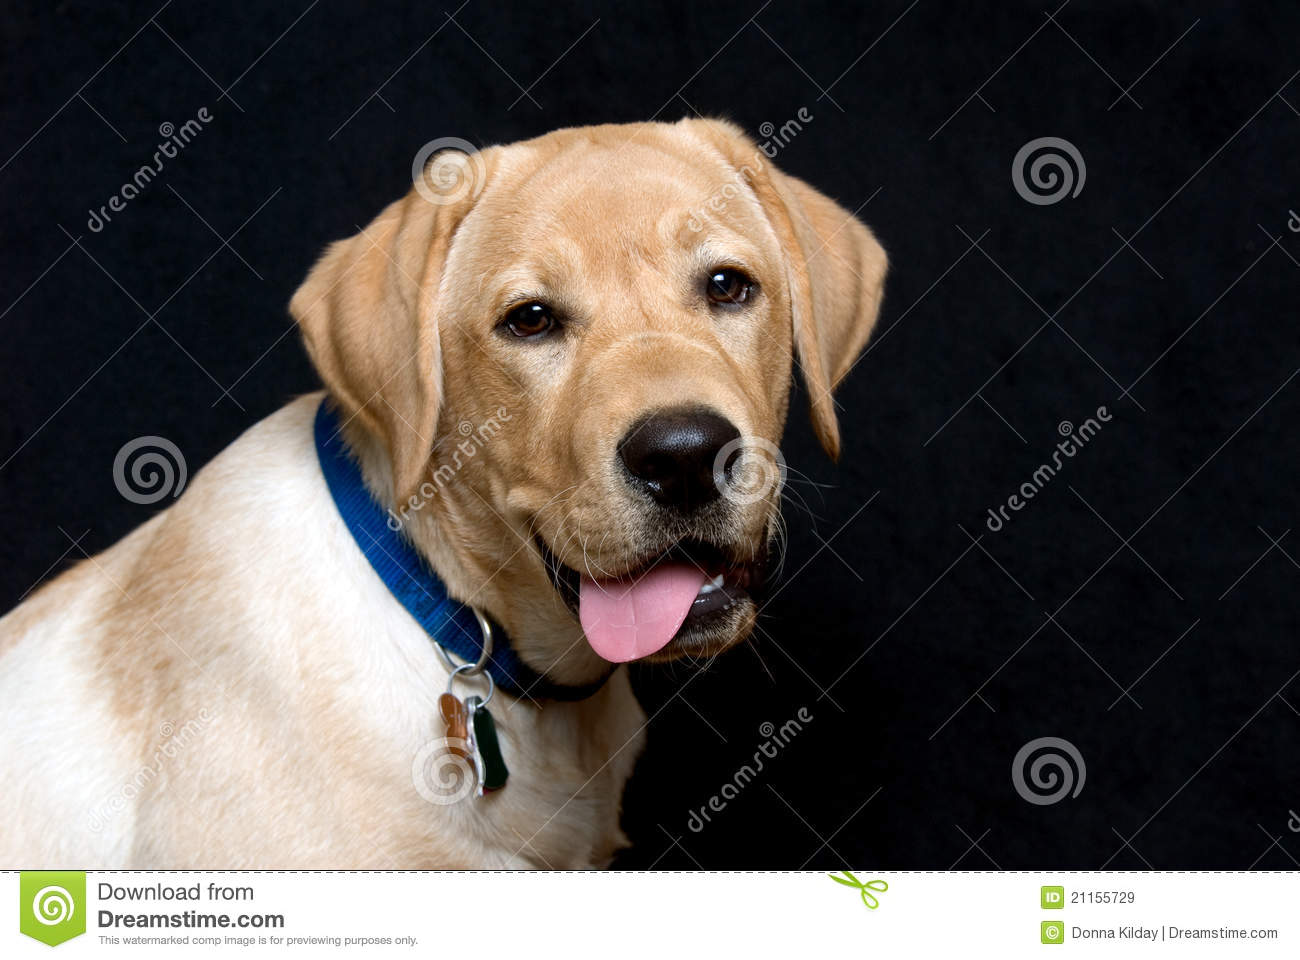 3d Animation Wallpaper For Pc English Labrador Retriever Puppy Royalty Free Stock Images